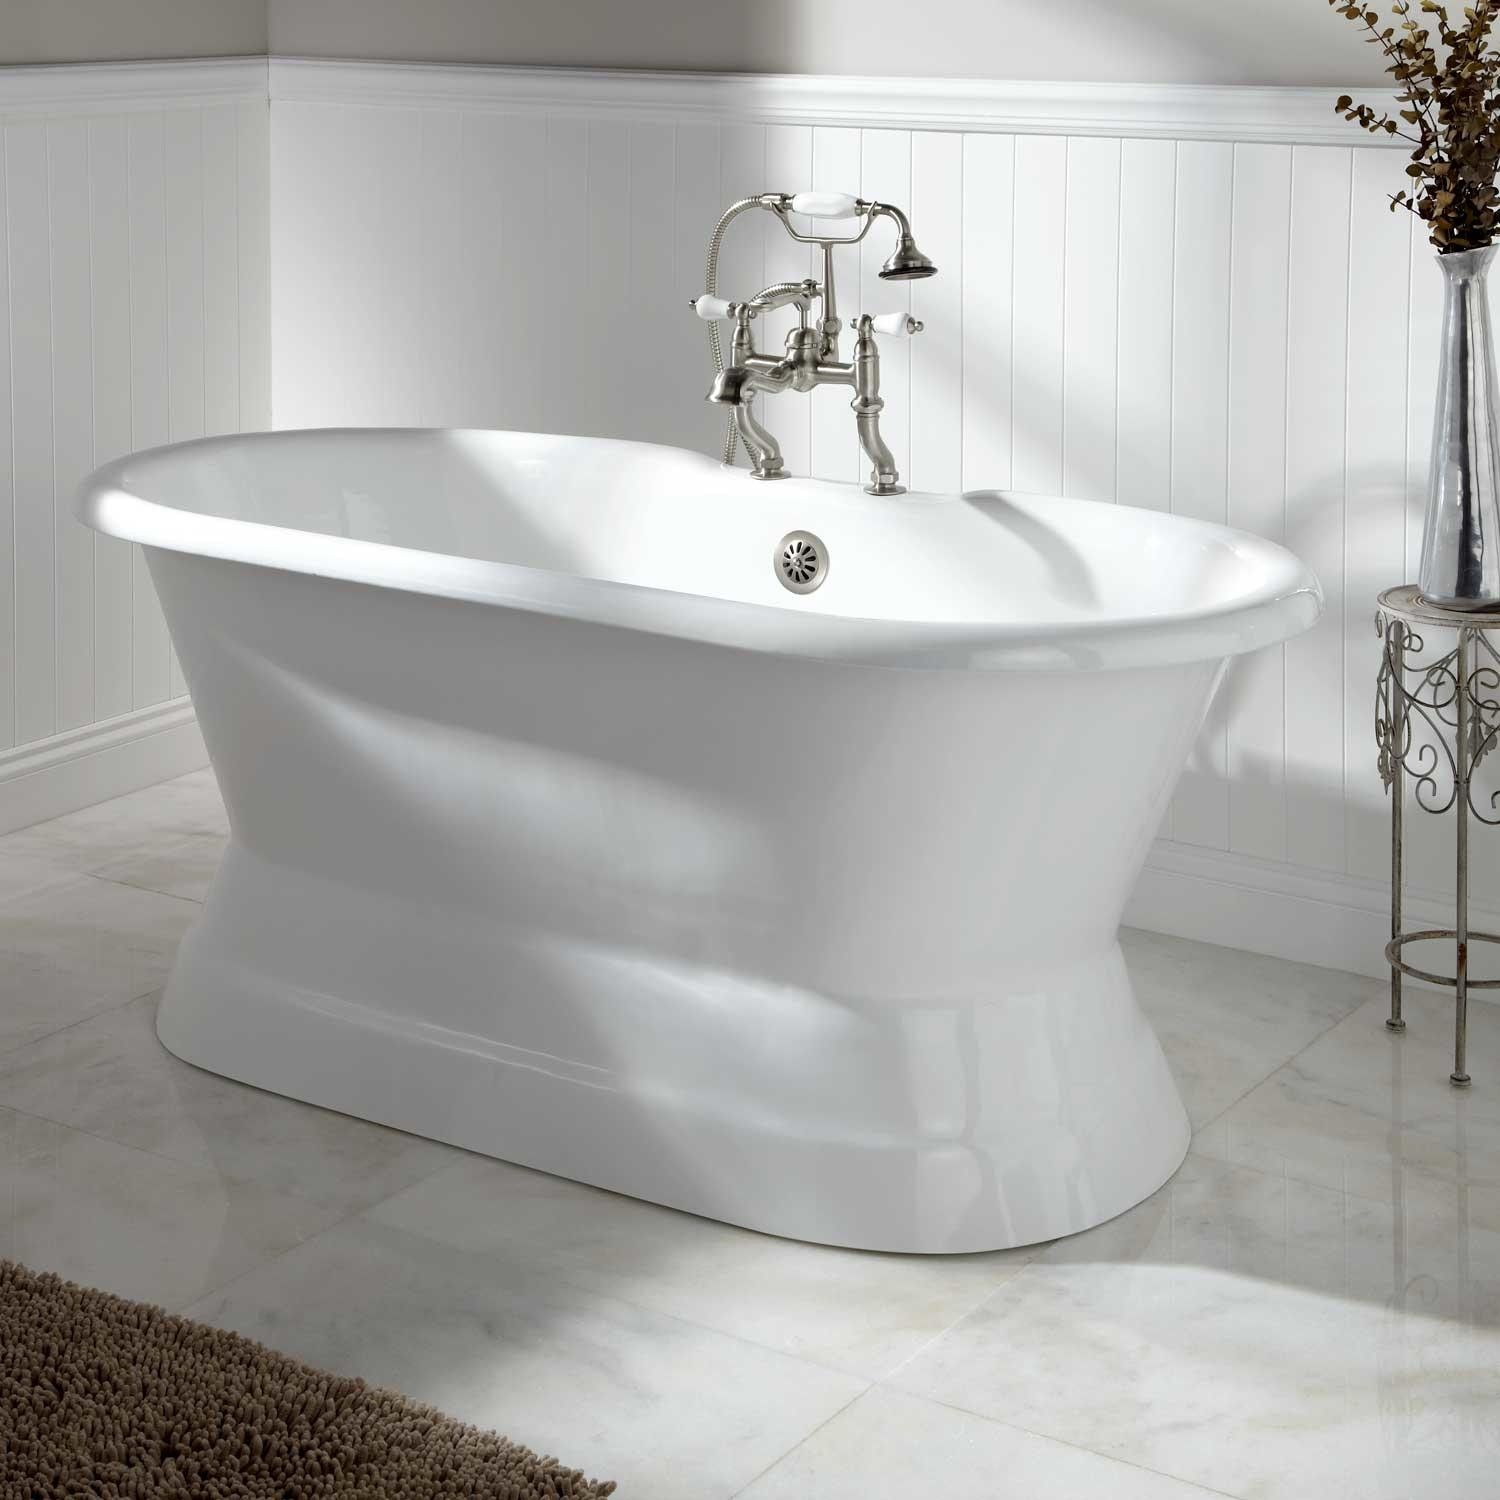 Henley Cast Iron Double-Ended Pedestal Tub | Pedestal tub, Tubs and Iron